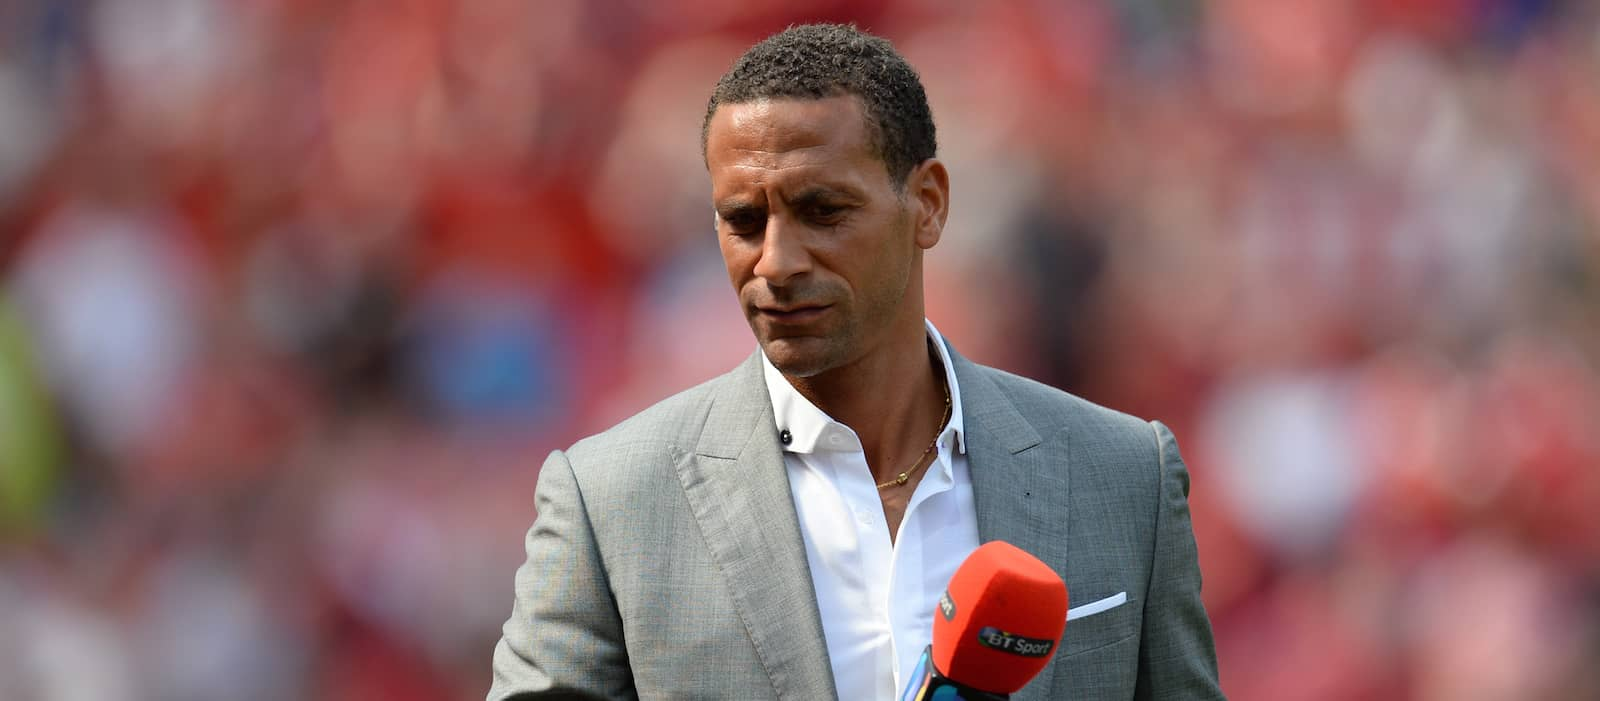 Rio Ferdinand claims Manchester United need to make three signings